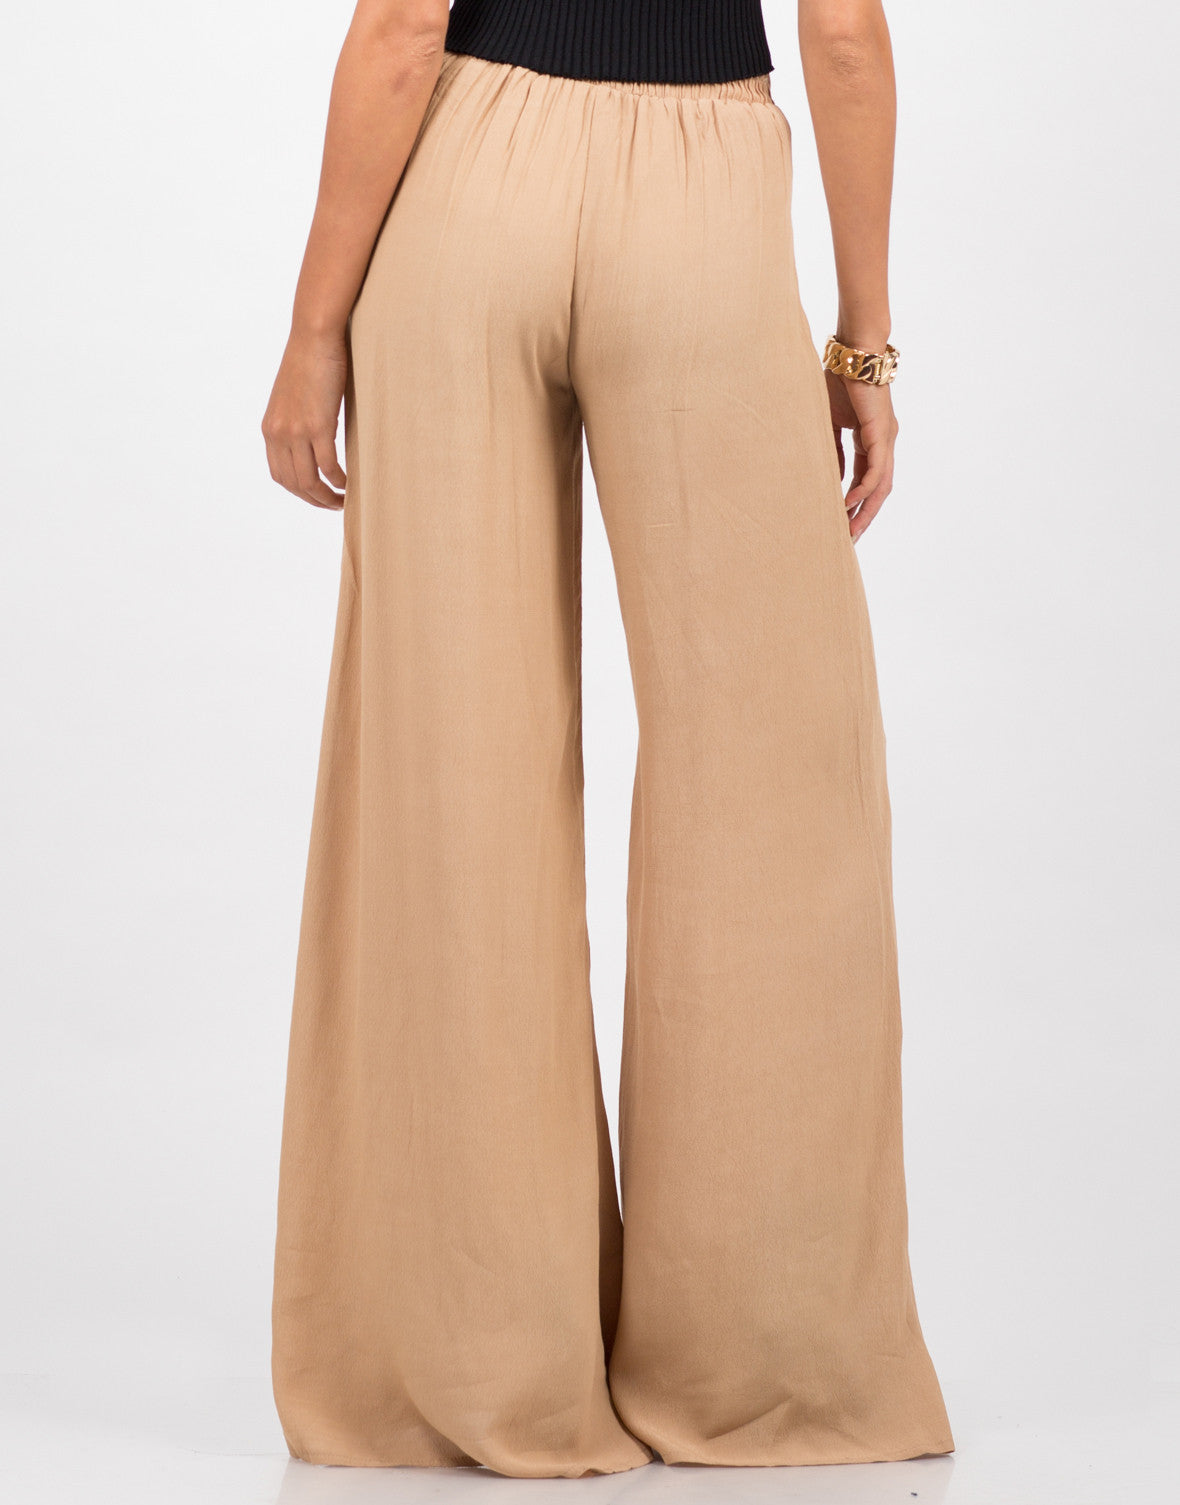 Back View of Flowy Palazzo Pants